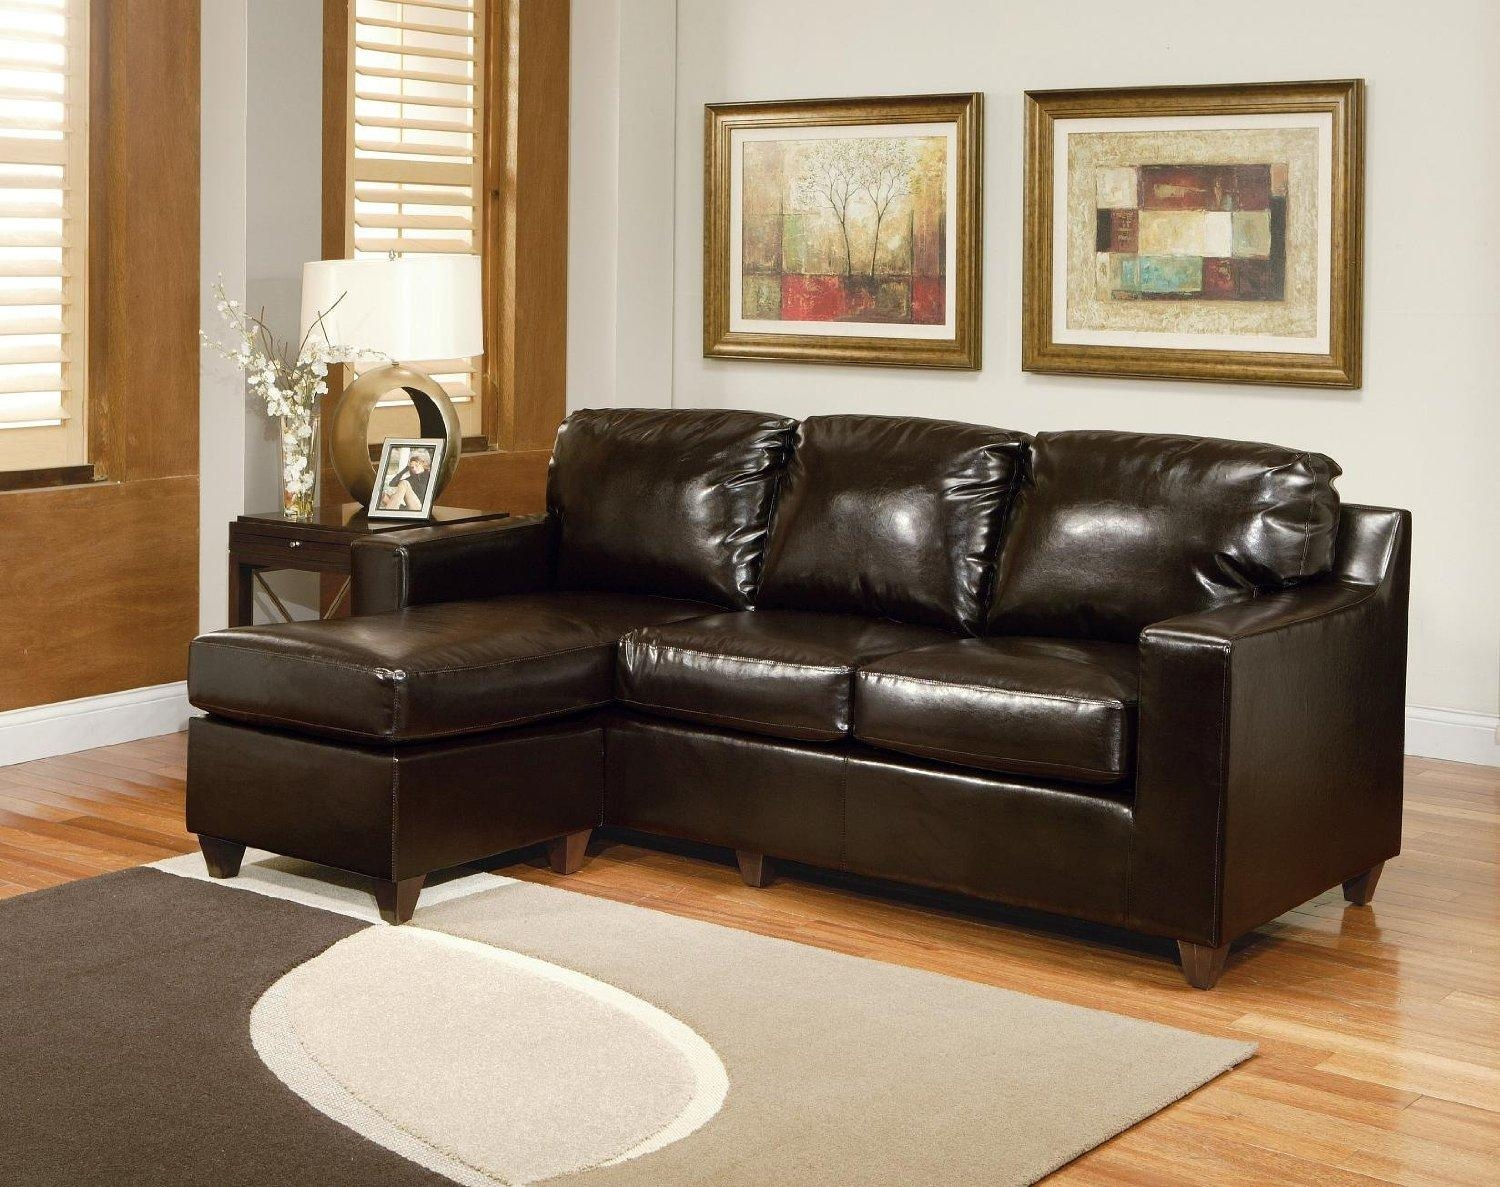 Small Scale Sectional Sofa With Chaise   Sofa Gallery   Kengire In Small Scale Sofas (Image 9 of 20)